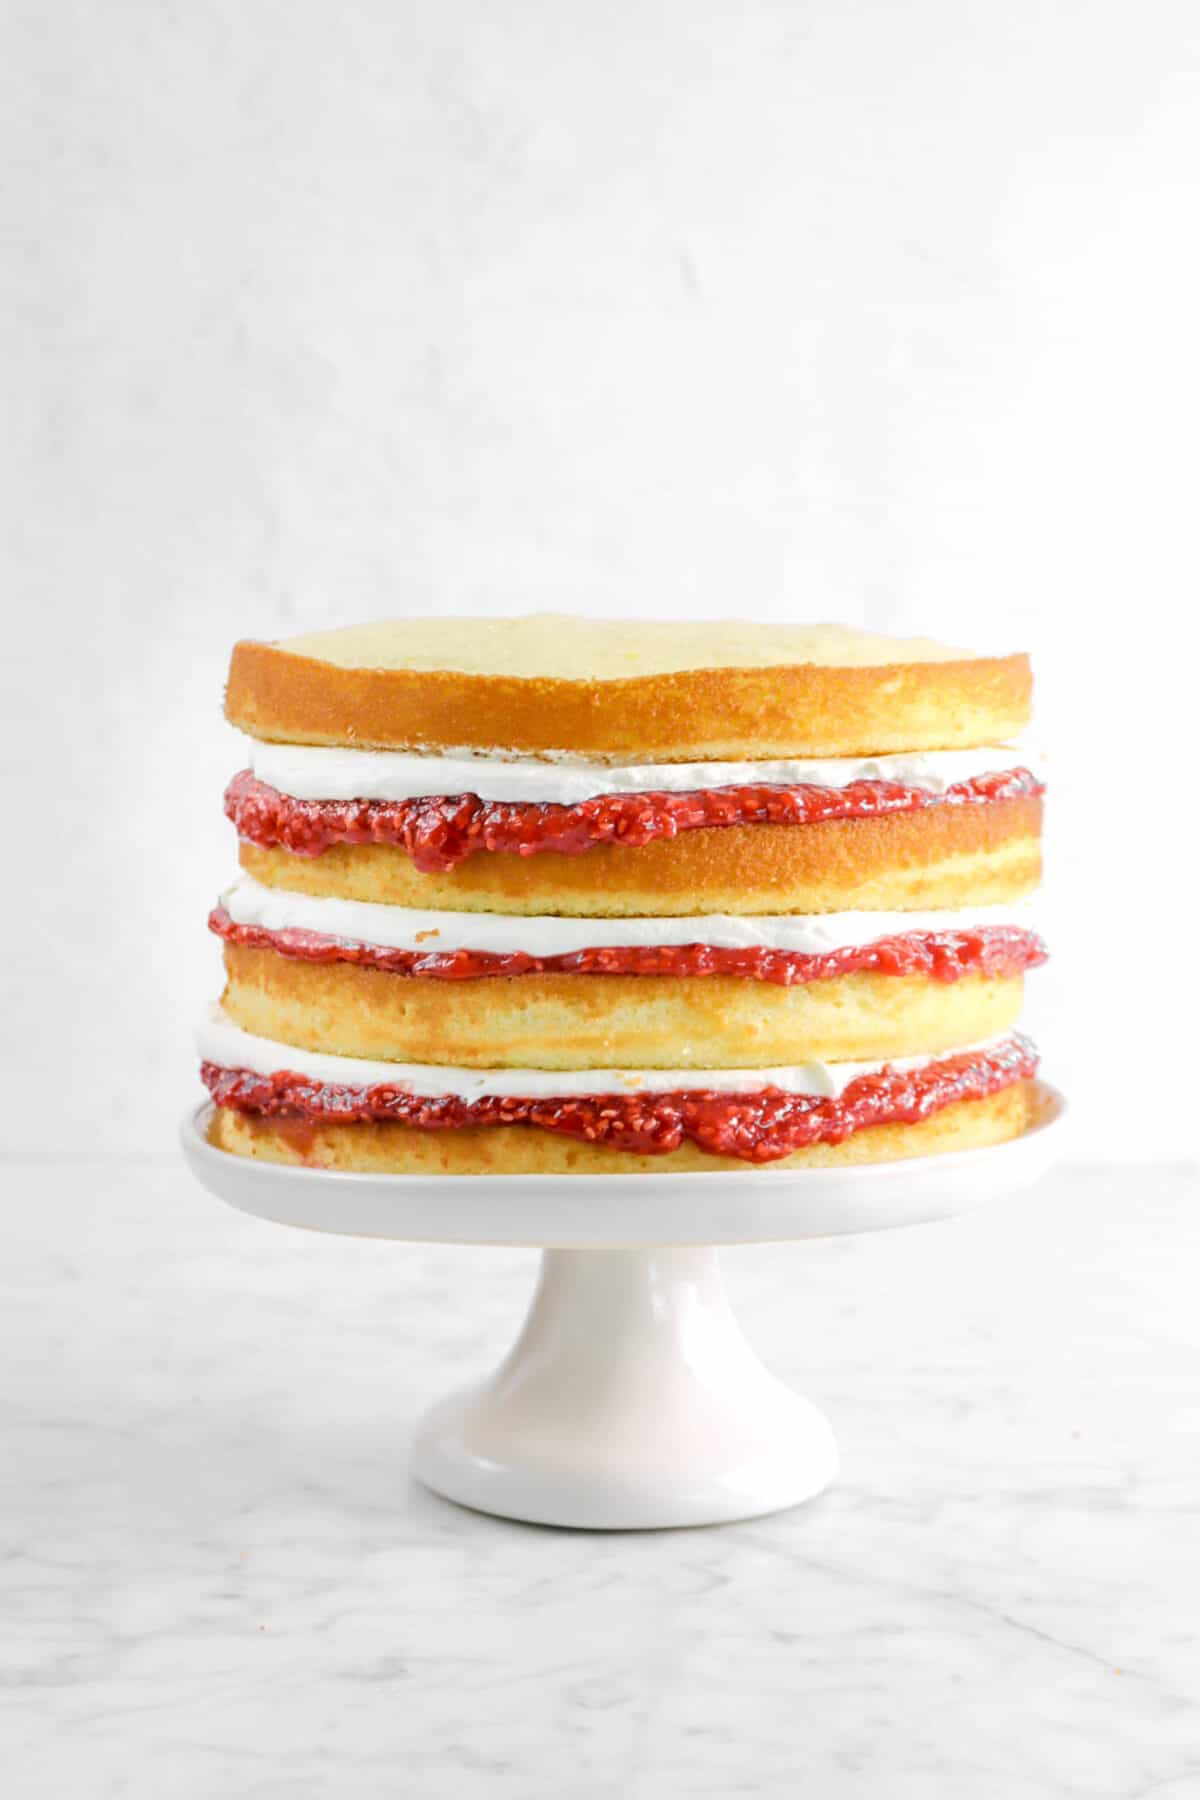 four layers of lemon cake with raspberry jam and chantilly cream